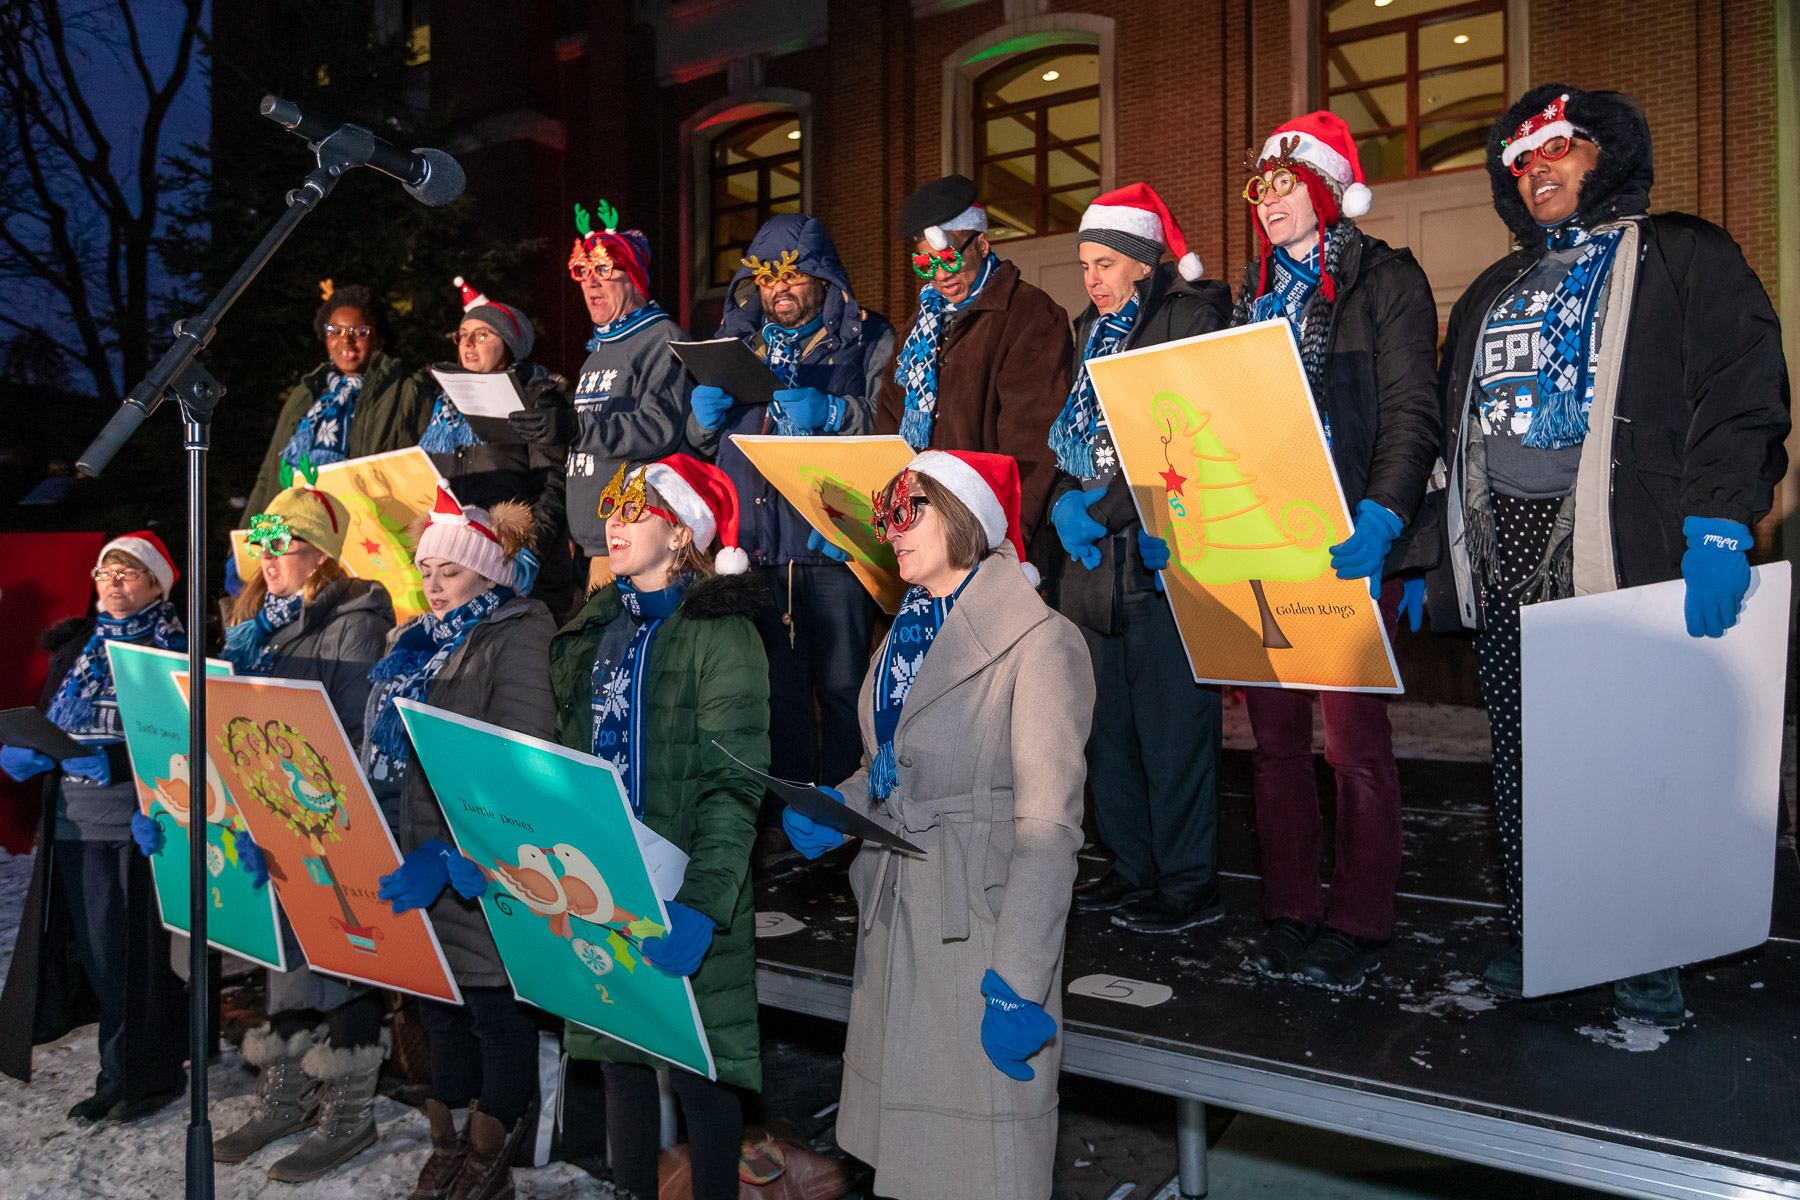 The DePaul Tree Lighting Choir, made up of DePaul staff, gave their rendition of The Twelve Days of Christmas before the tree was lit. (DePaul University/Jeff Carrion)